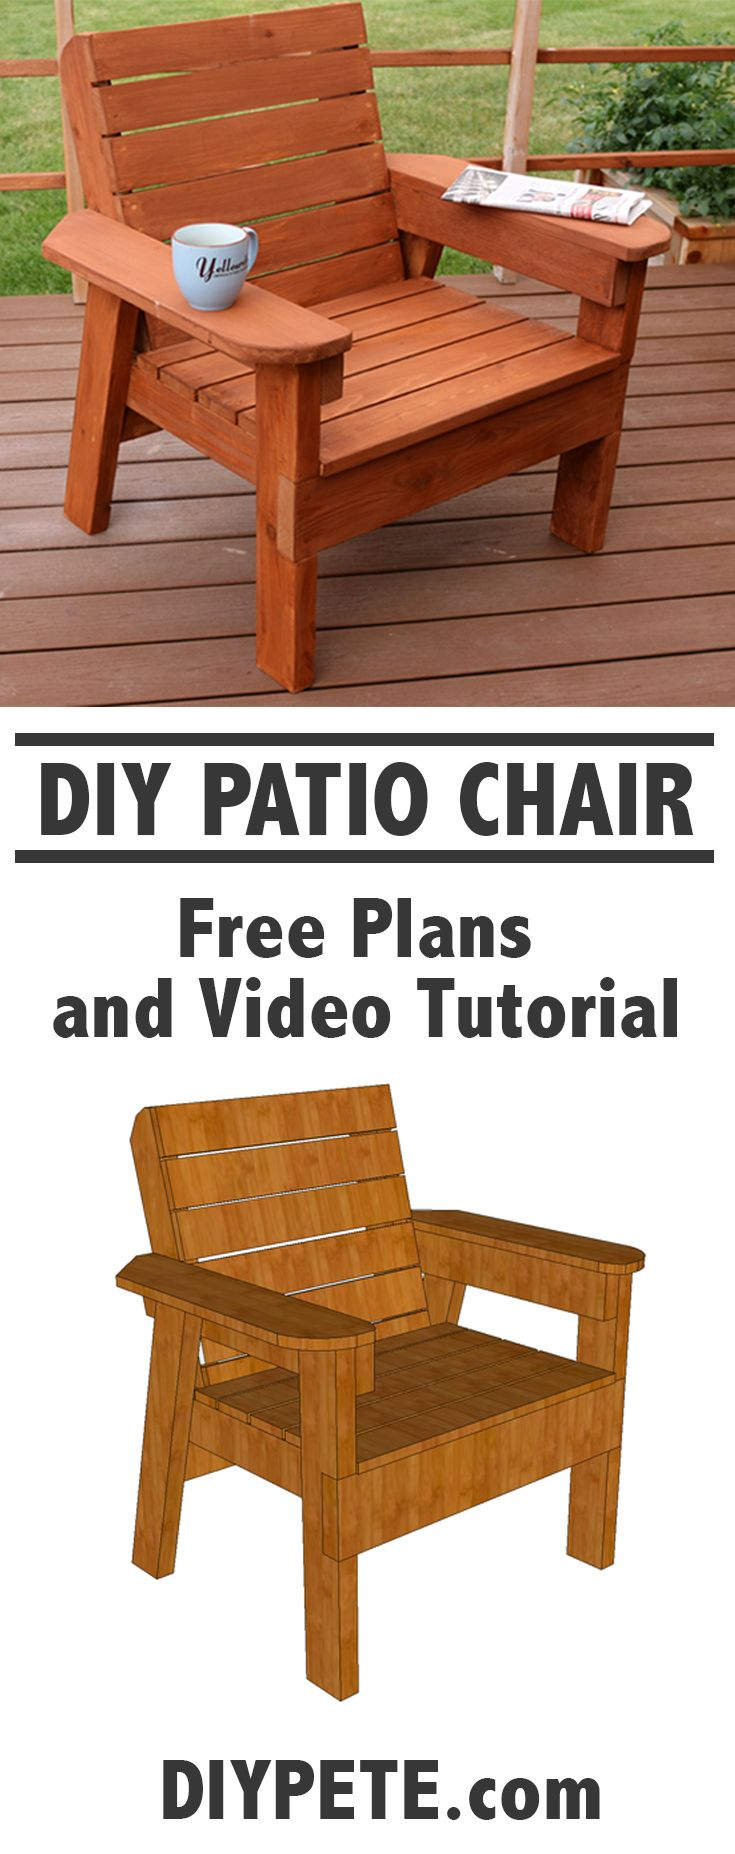 Diy Patio Chair With Plans In 2019 Diy Builds Outdoor